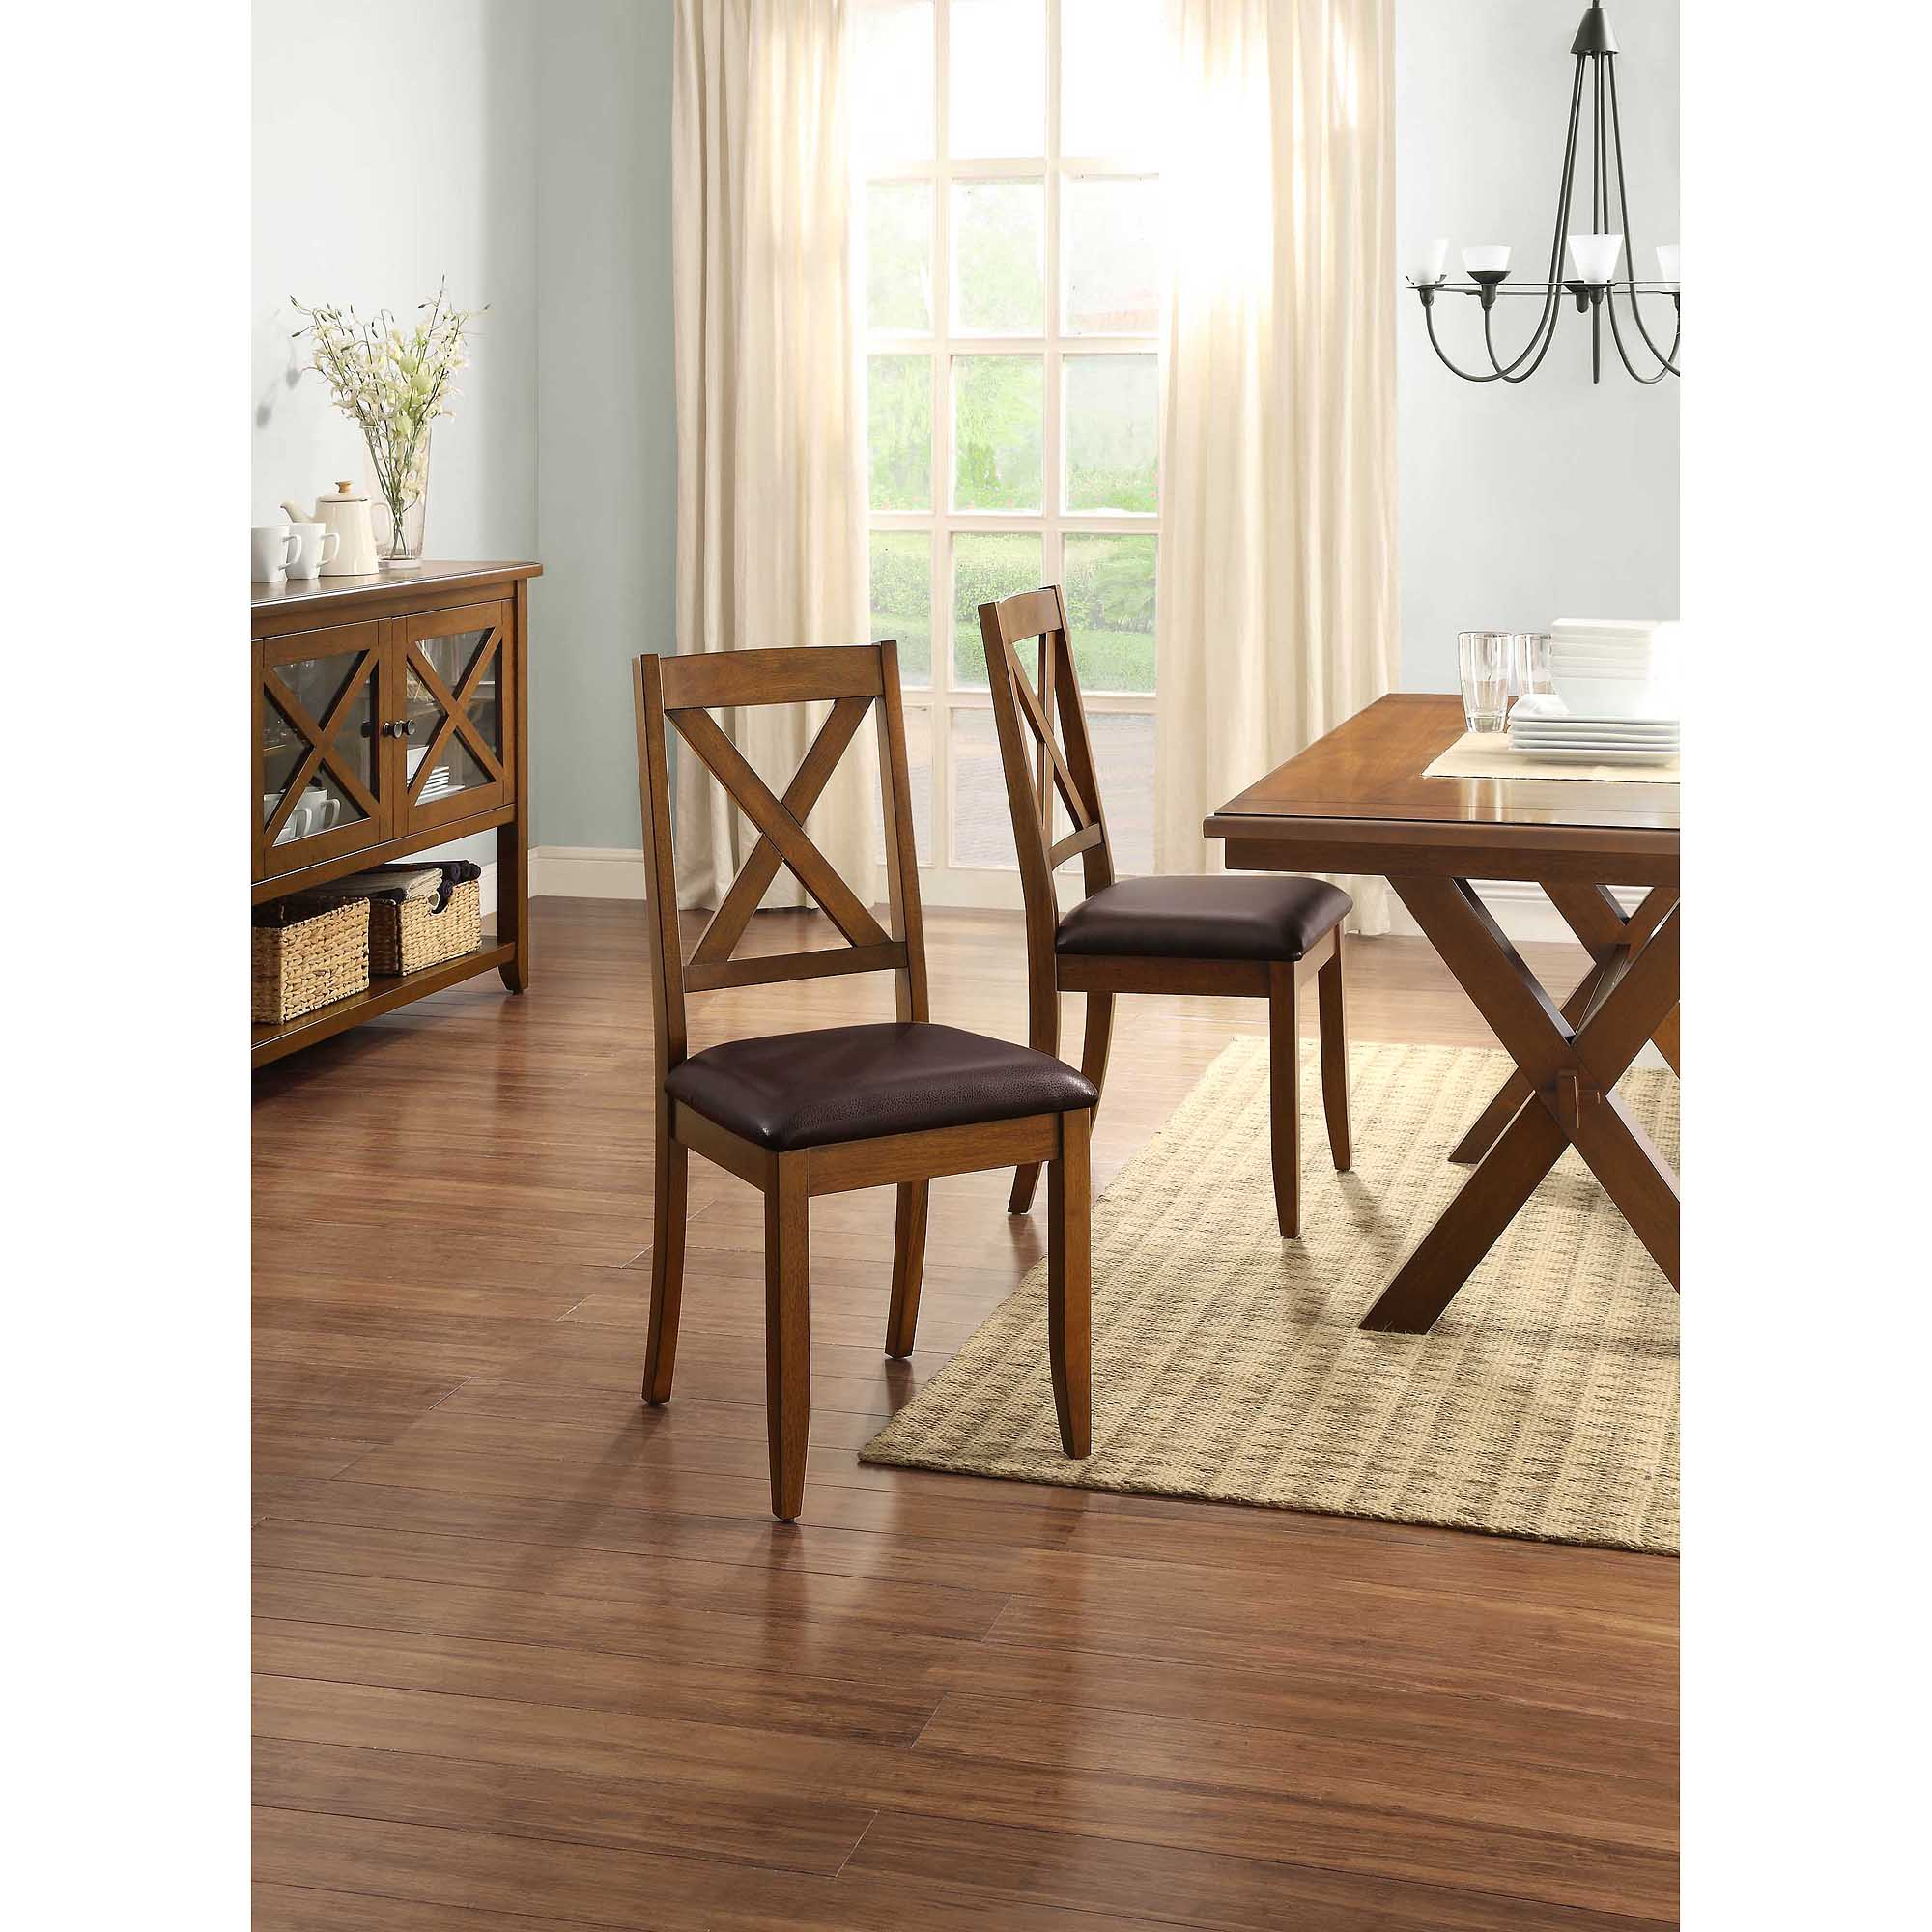 Better Homes And Gardens Maddox Crossing Dining Chair, Set Of 2    Walmart.com